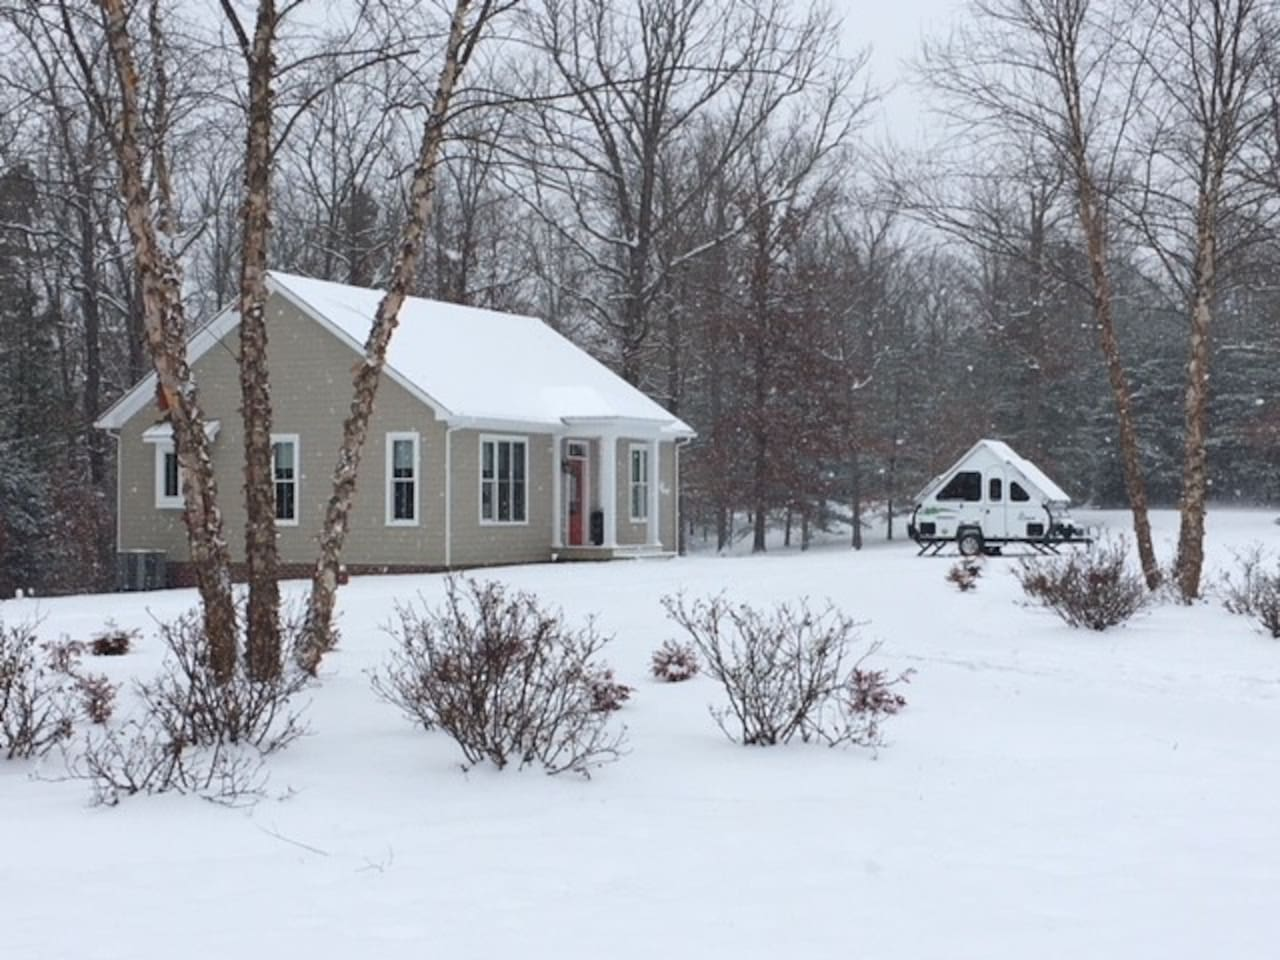 Winter at our cottage, custom built in 2015.  Well appointed, entire place with all that you can imagine - hard wood floors, stainless appliances, central air and heat.  Soft cotton, down pillows on your beds!  Big bath, local magazines on C'Ville.